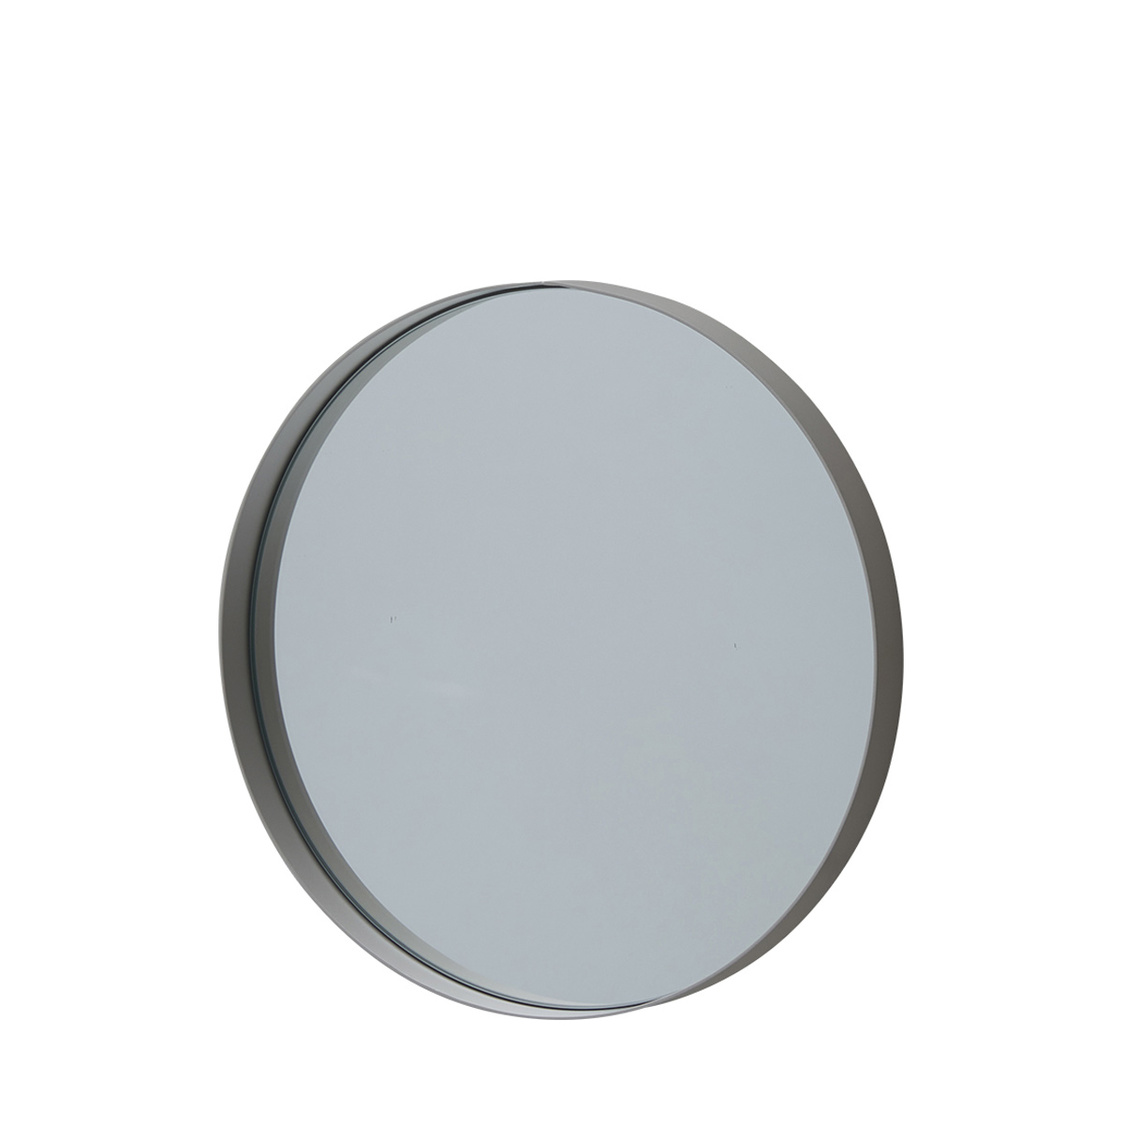 Iloom GLEN STUDIO Round Mirror  HSAA0203-BG